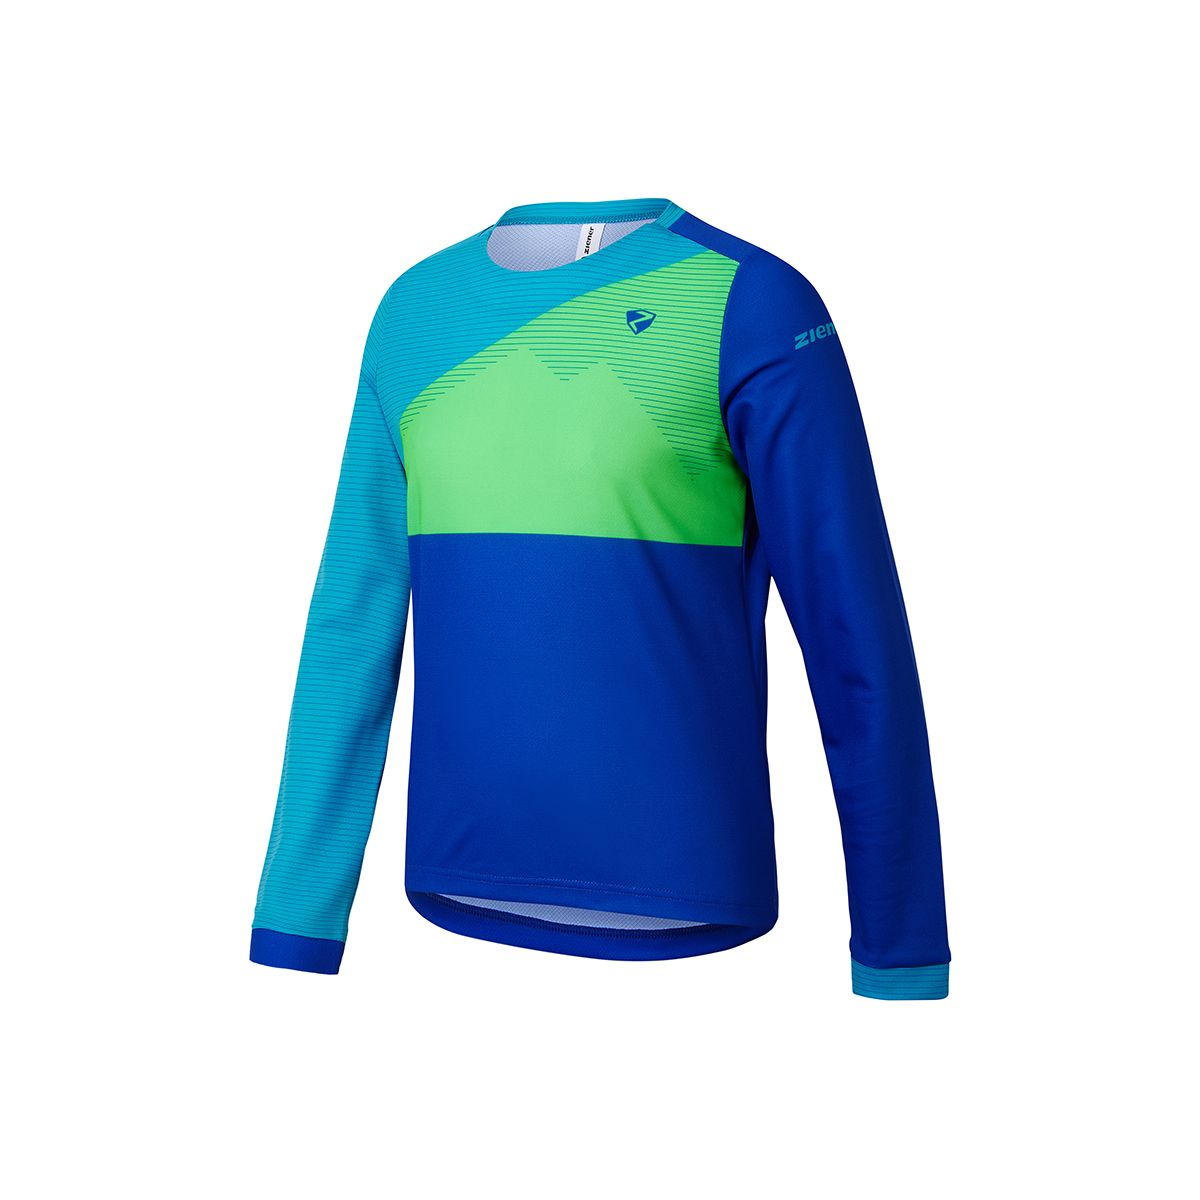 CADIM long sleeve shirt for kids